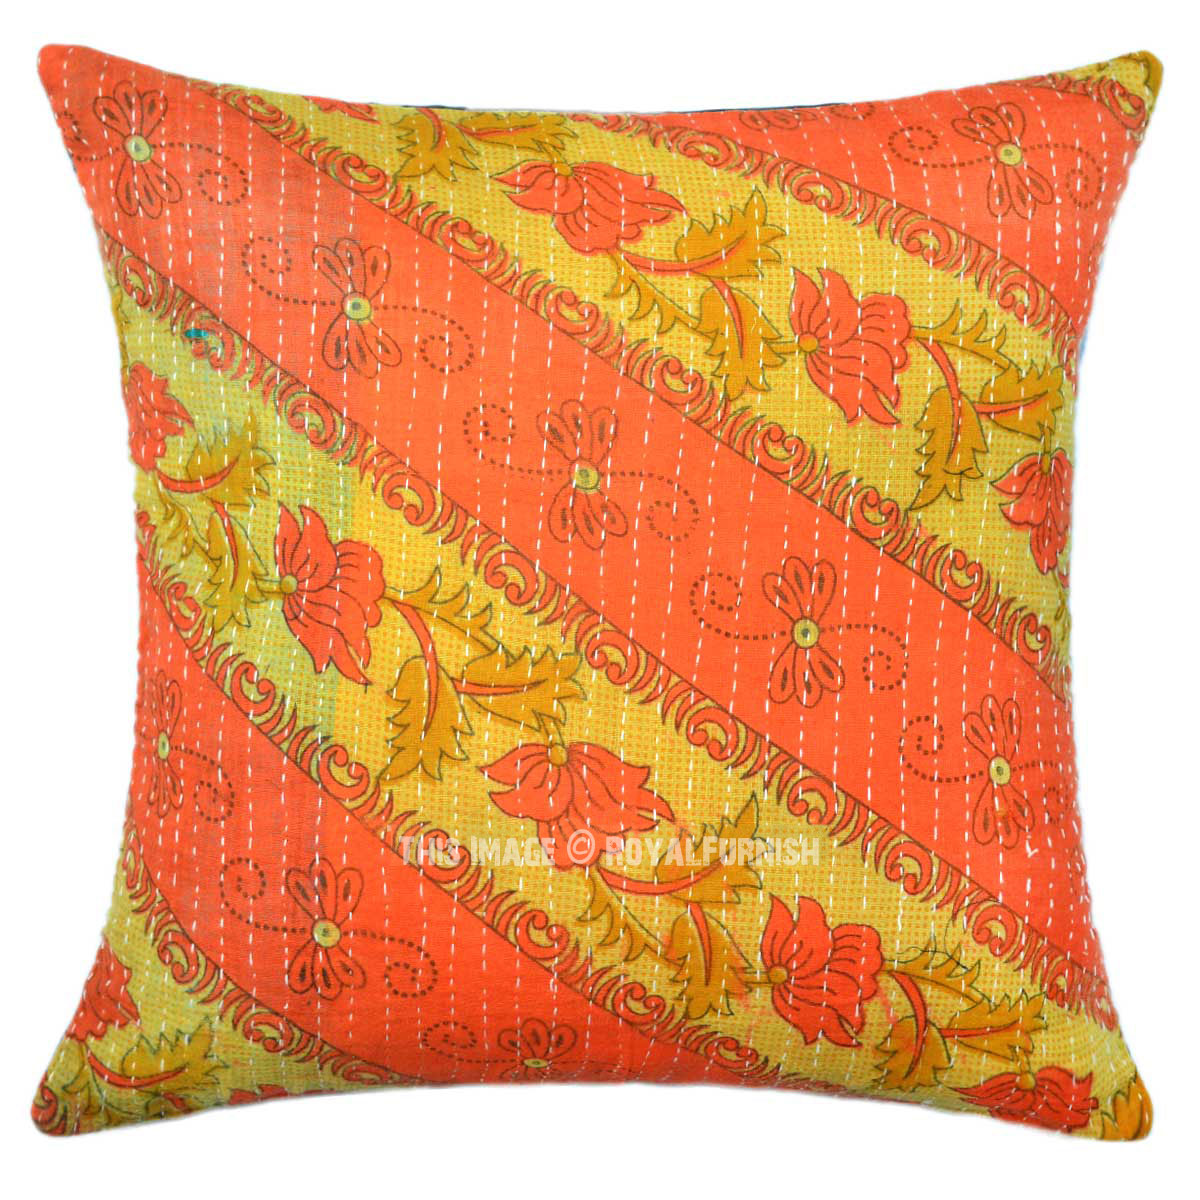 Decorative Pillows Vintage : Decorative 16X16 Vintage Kantha Throw Pillow Cover - RoyalFurnish.com